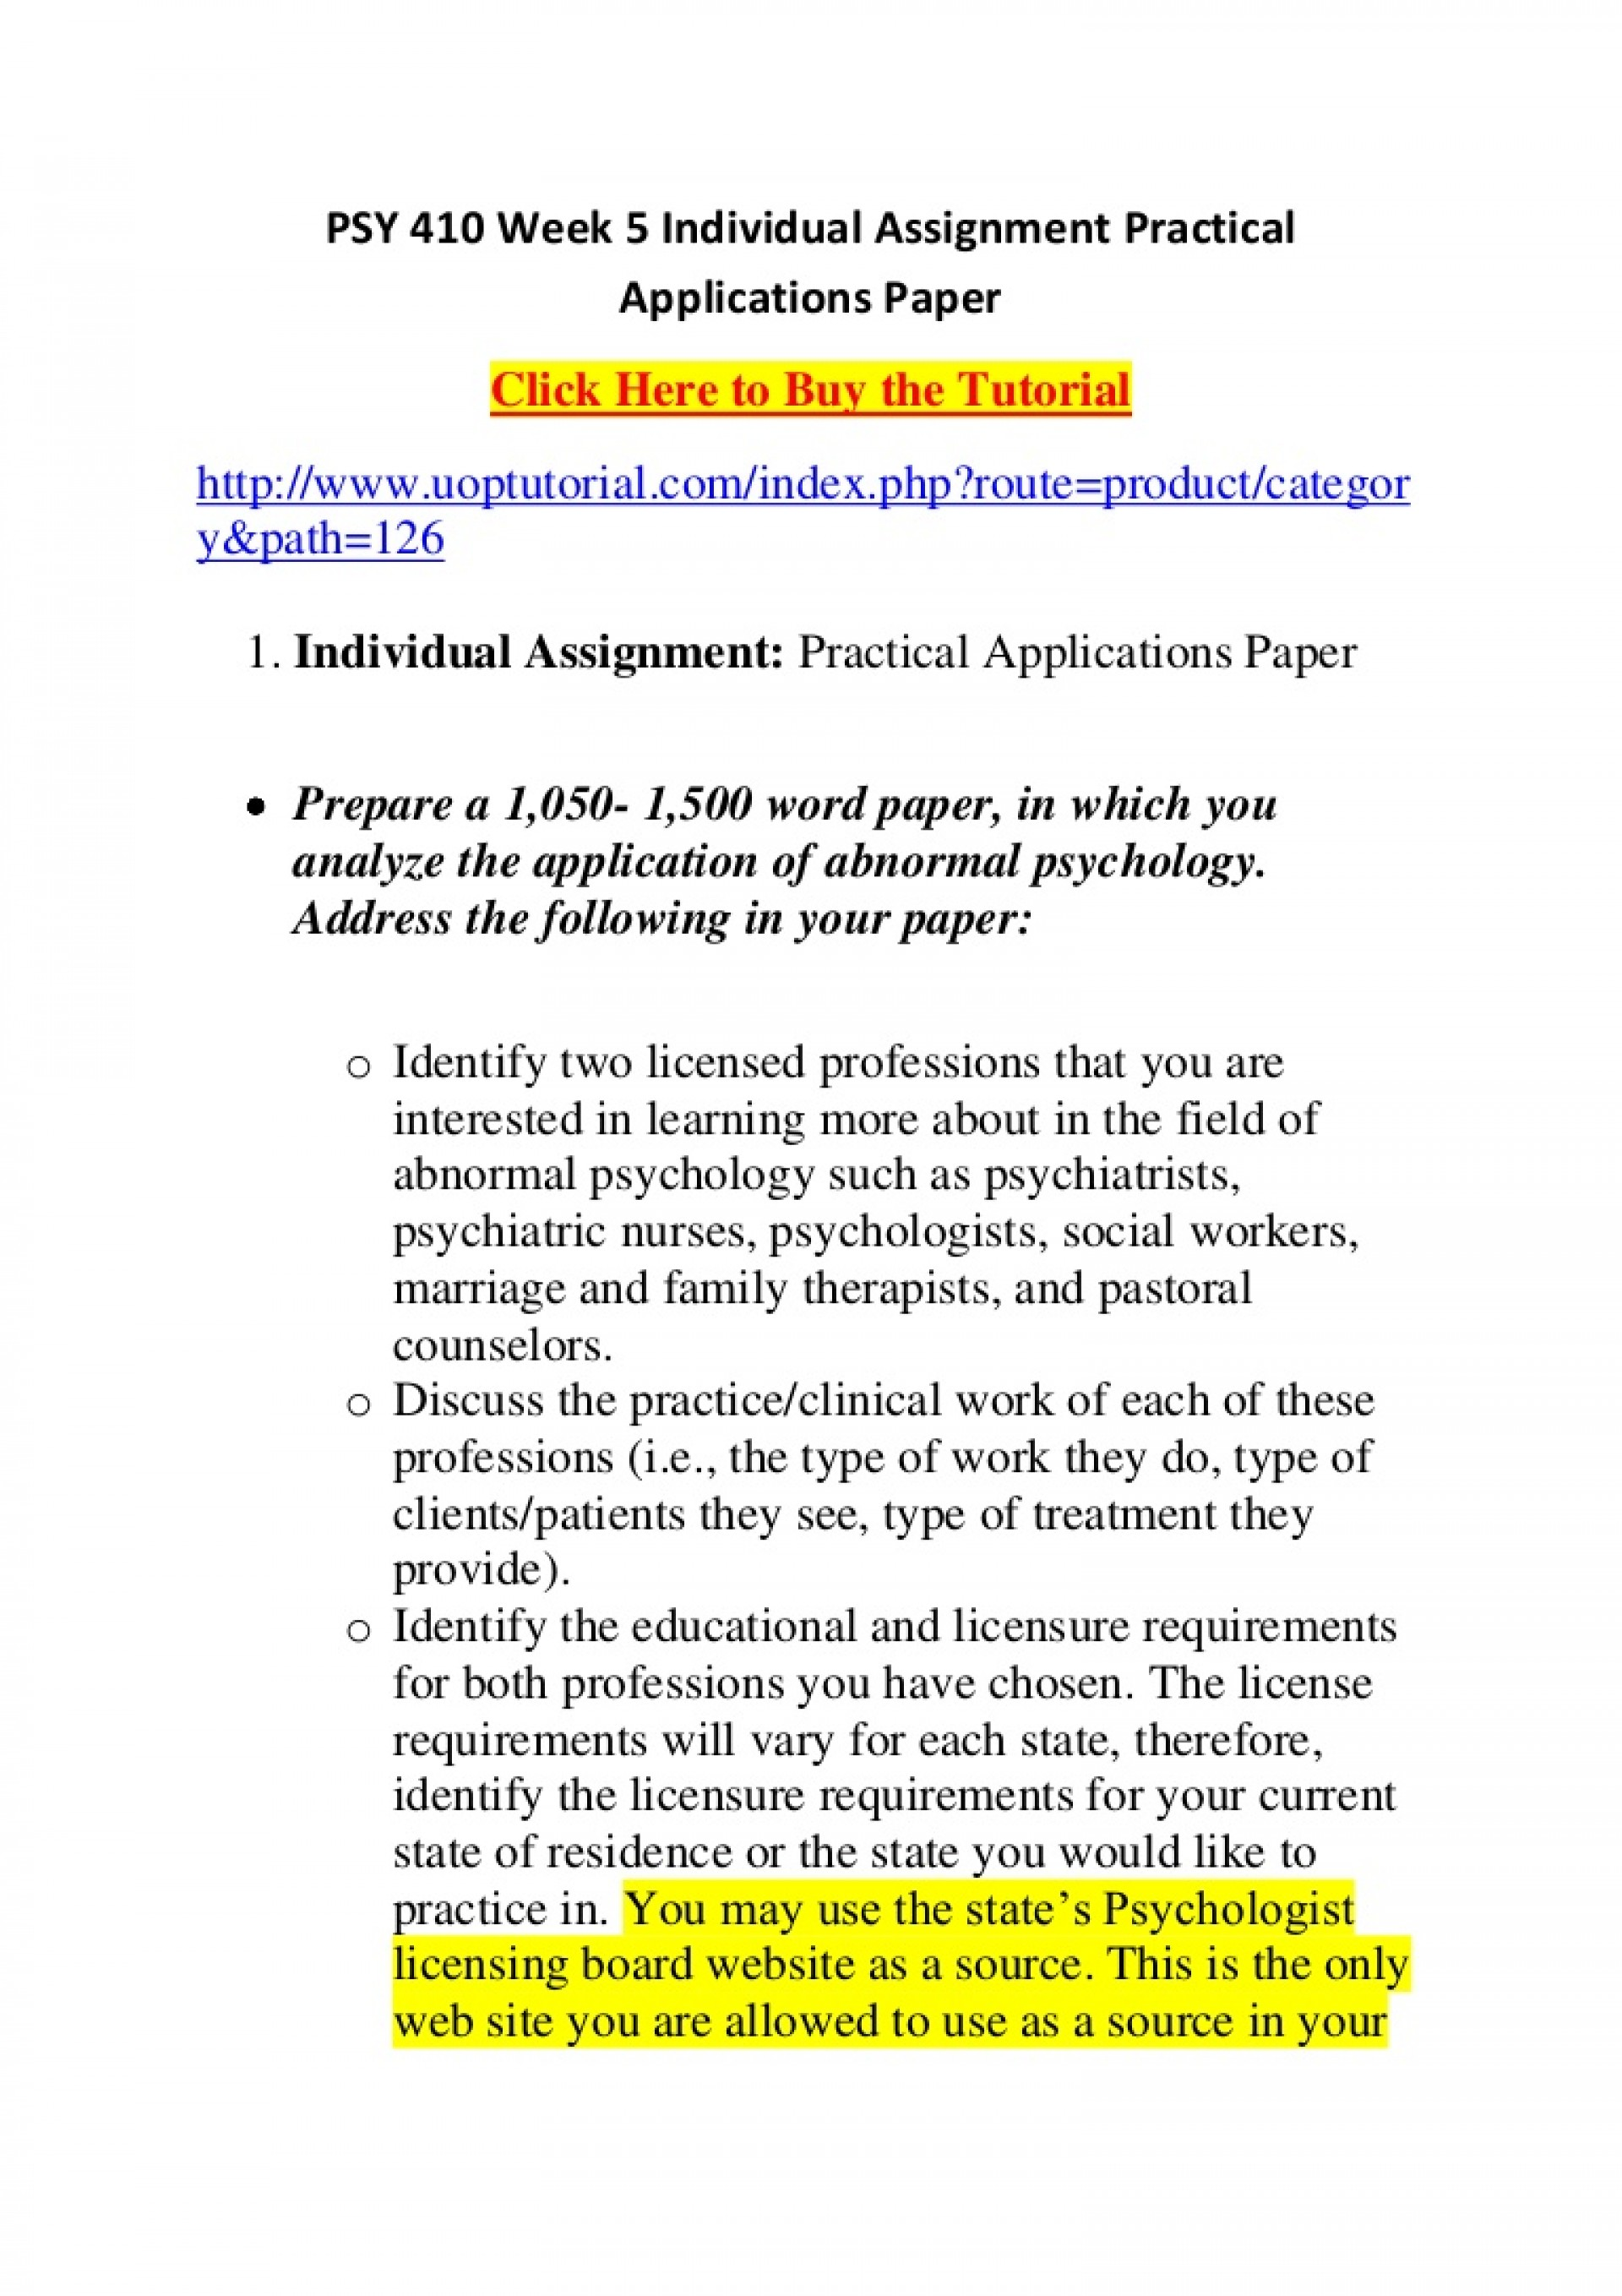 022 Research Paper Abnormal Psychology Topics For Psy410week5individualassignmentpracticalapplicationspaper Phpapp02 Thumbnail Unique 1920